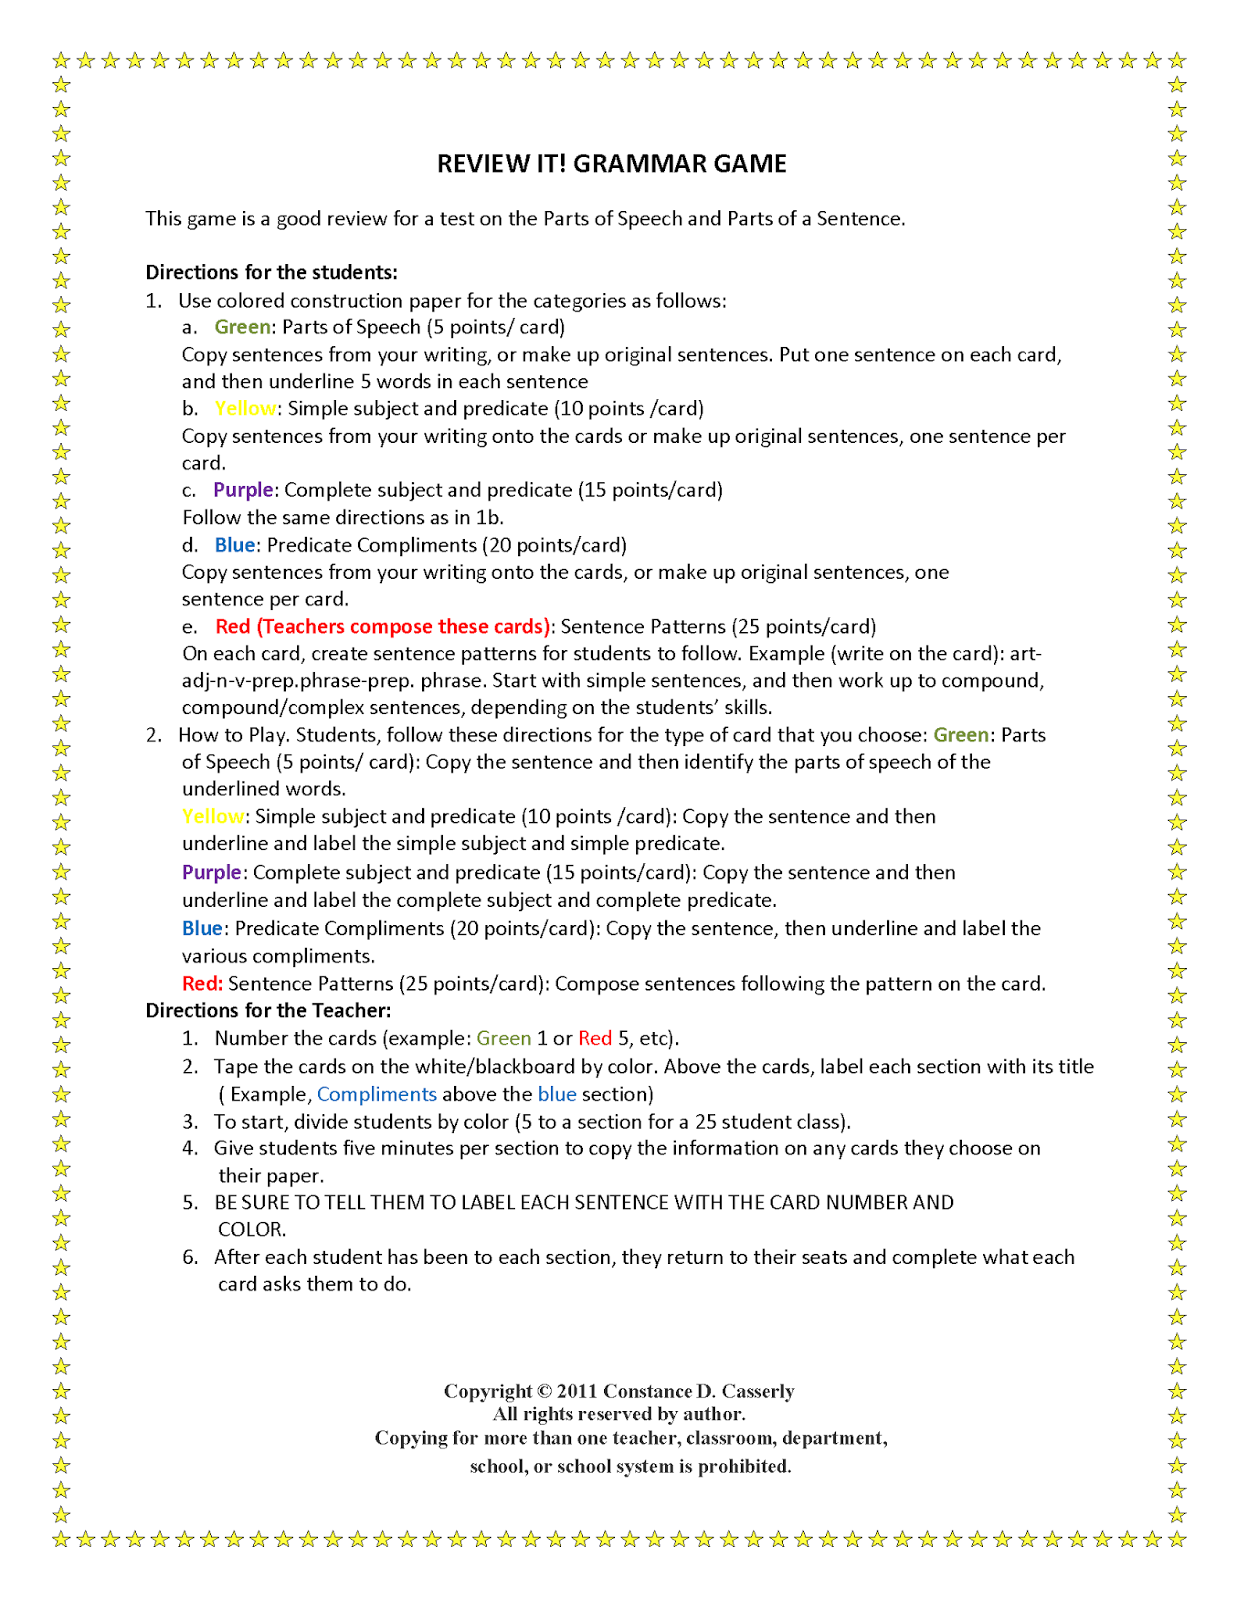 P Rts Of Speech W Ksheets Middle School Free W Ksheets Libr Ry